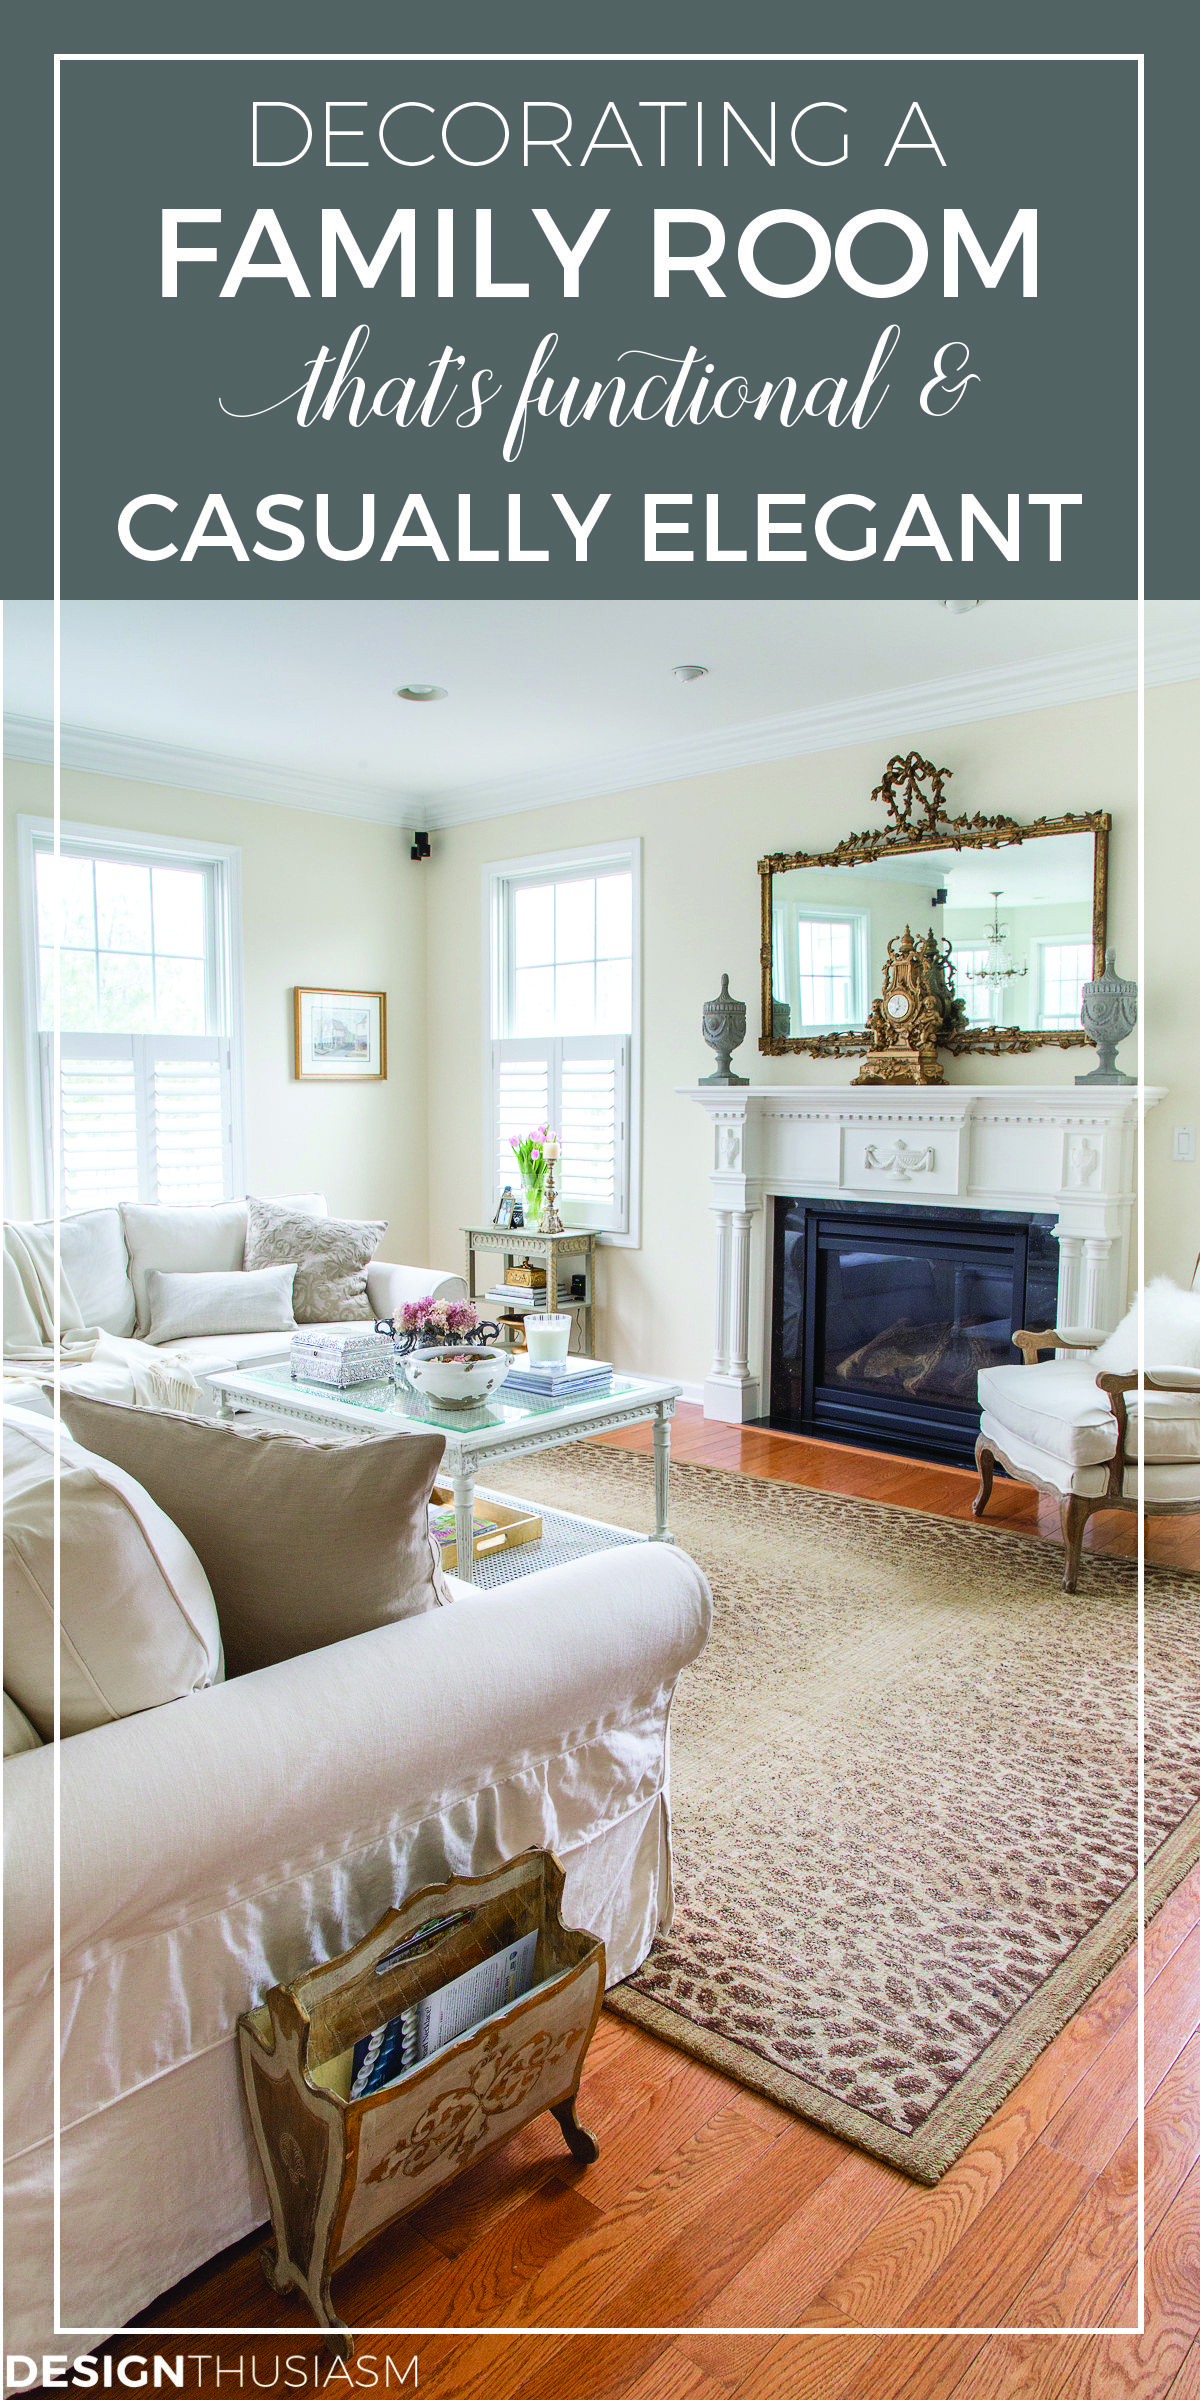 Simple Changes for a Functional, Casually Elegant Family Room ...